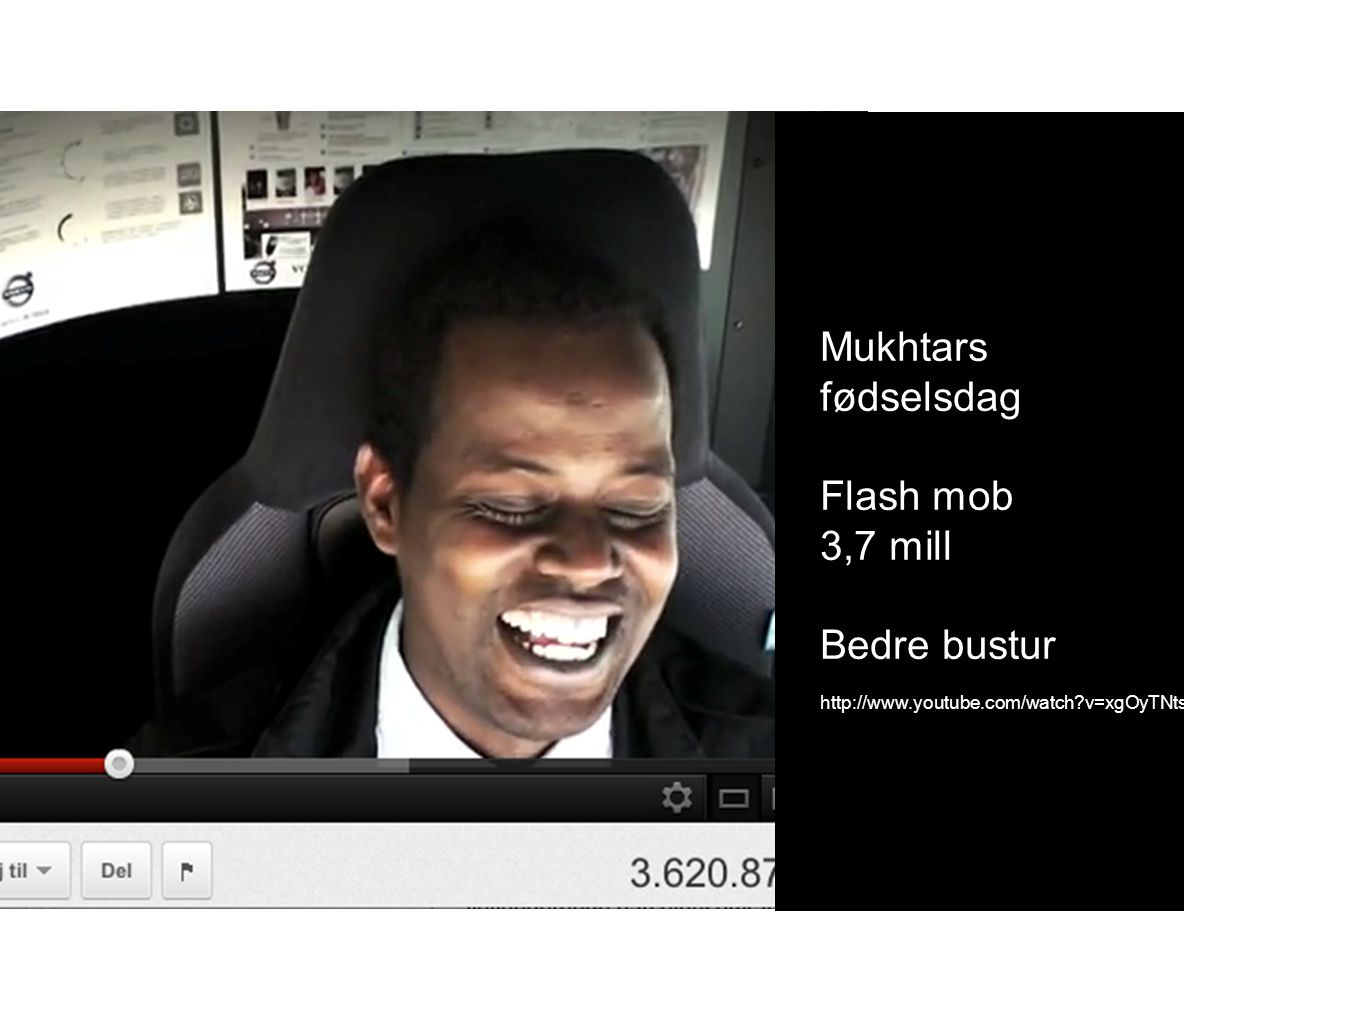 Mukhtars fødselsdag Flash mob 3,7 mill Bedre bustur http://www.youtube.com/watch v=xgOyTNtsWyY